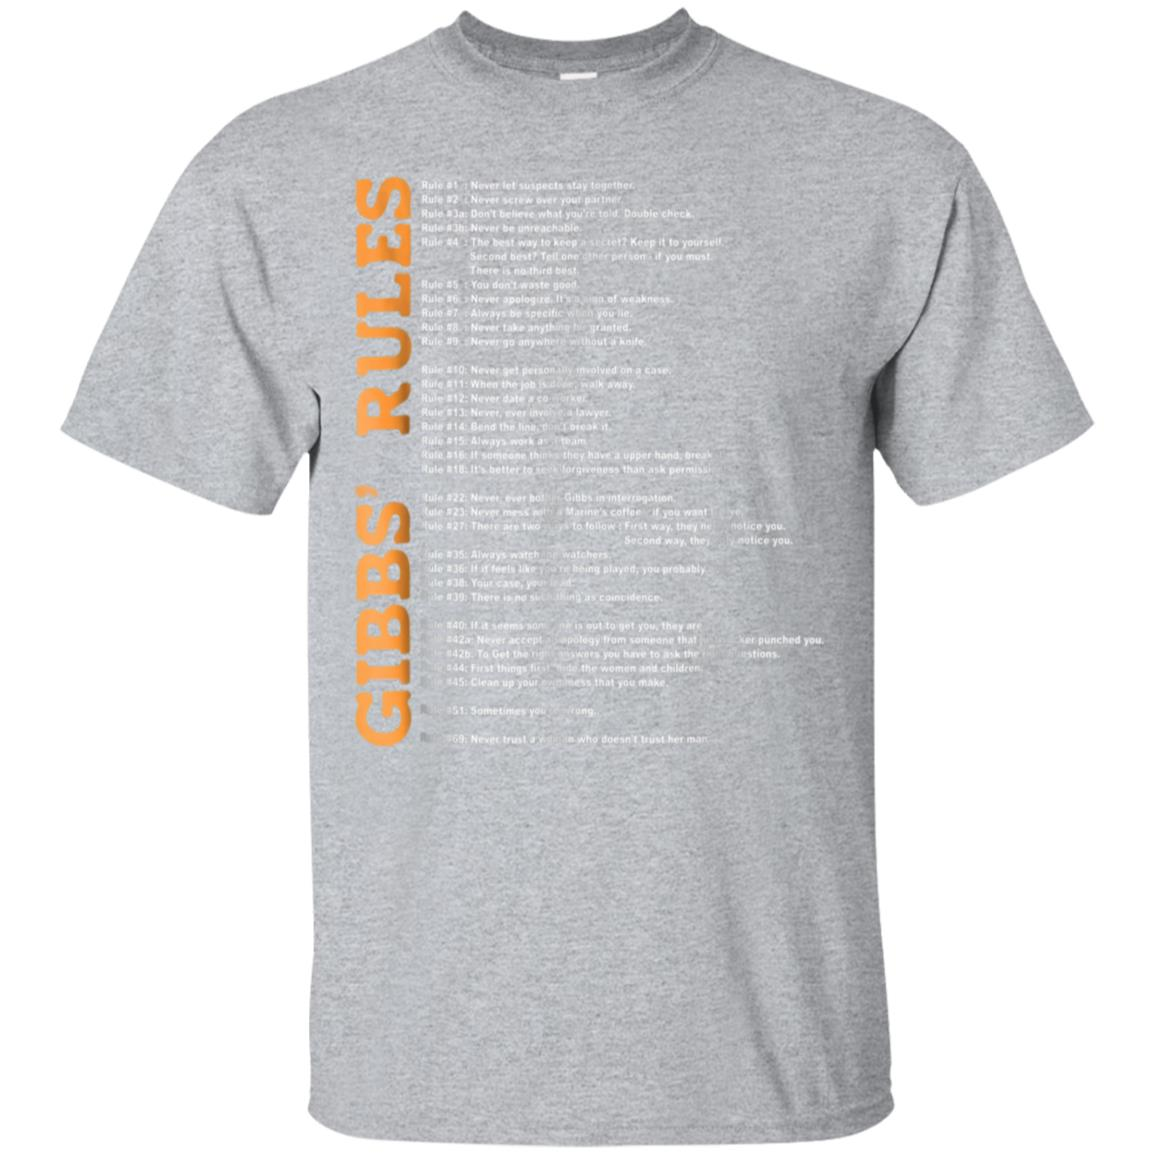 Awesome Gibbs Rules T Shirt 99promocode